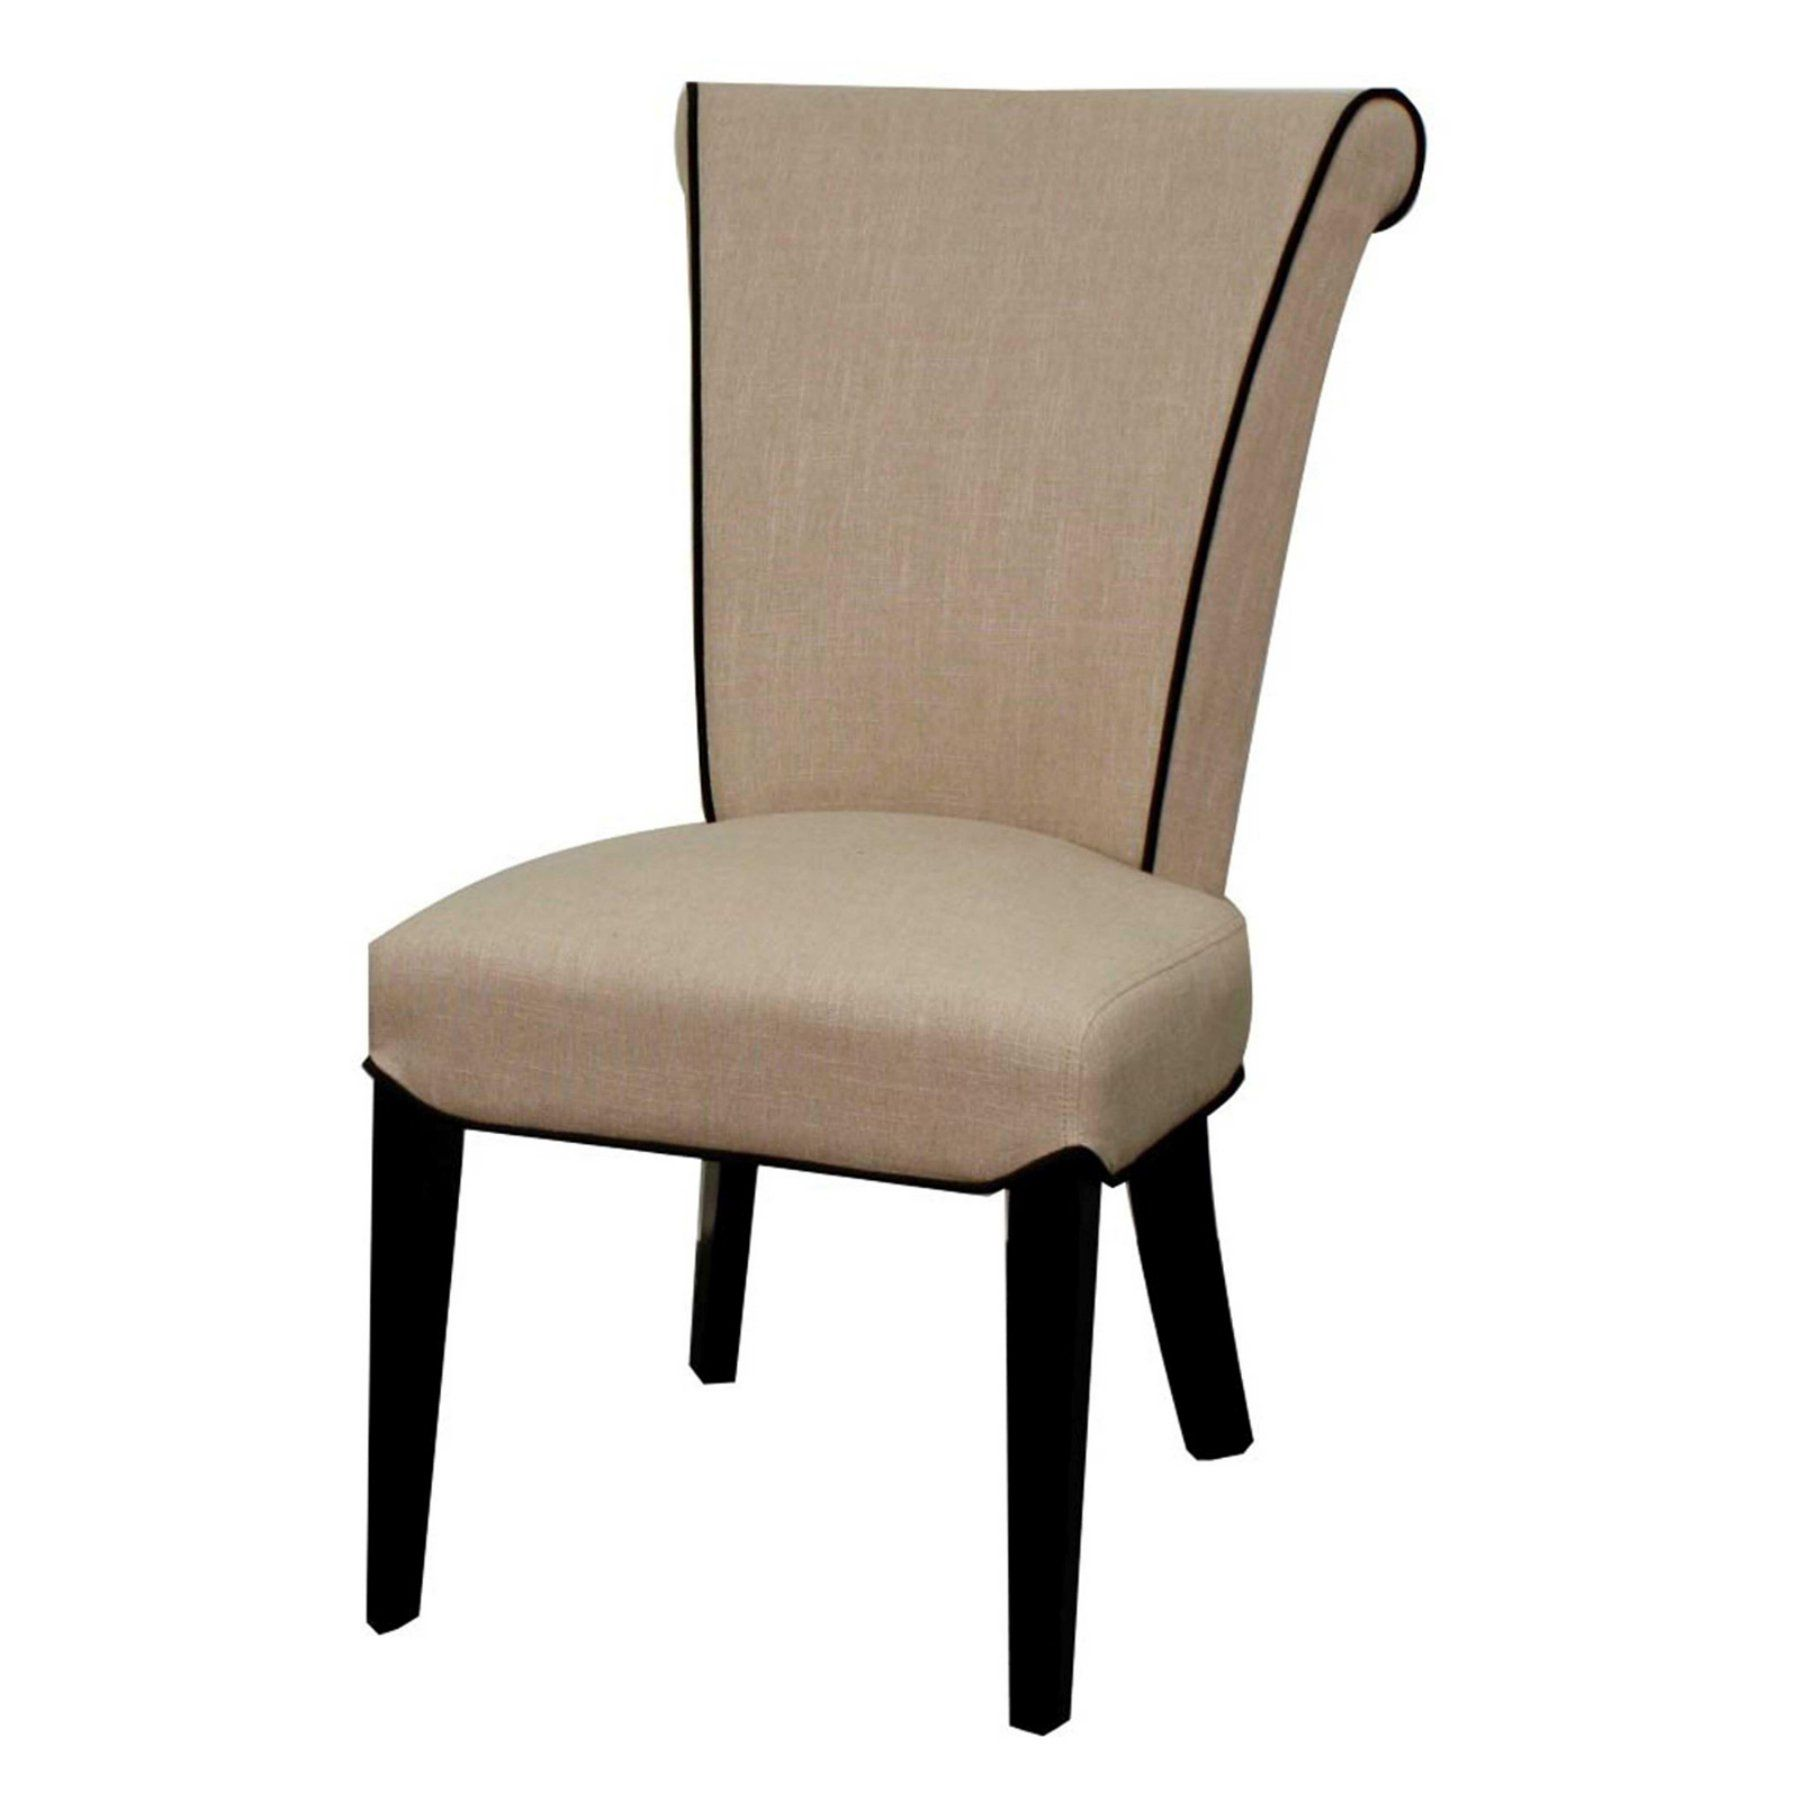 New Pacific Direct Inc Bentley Fabric Dining Chair Black Legs